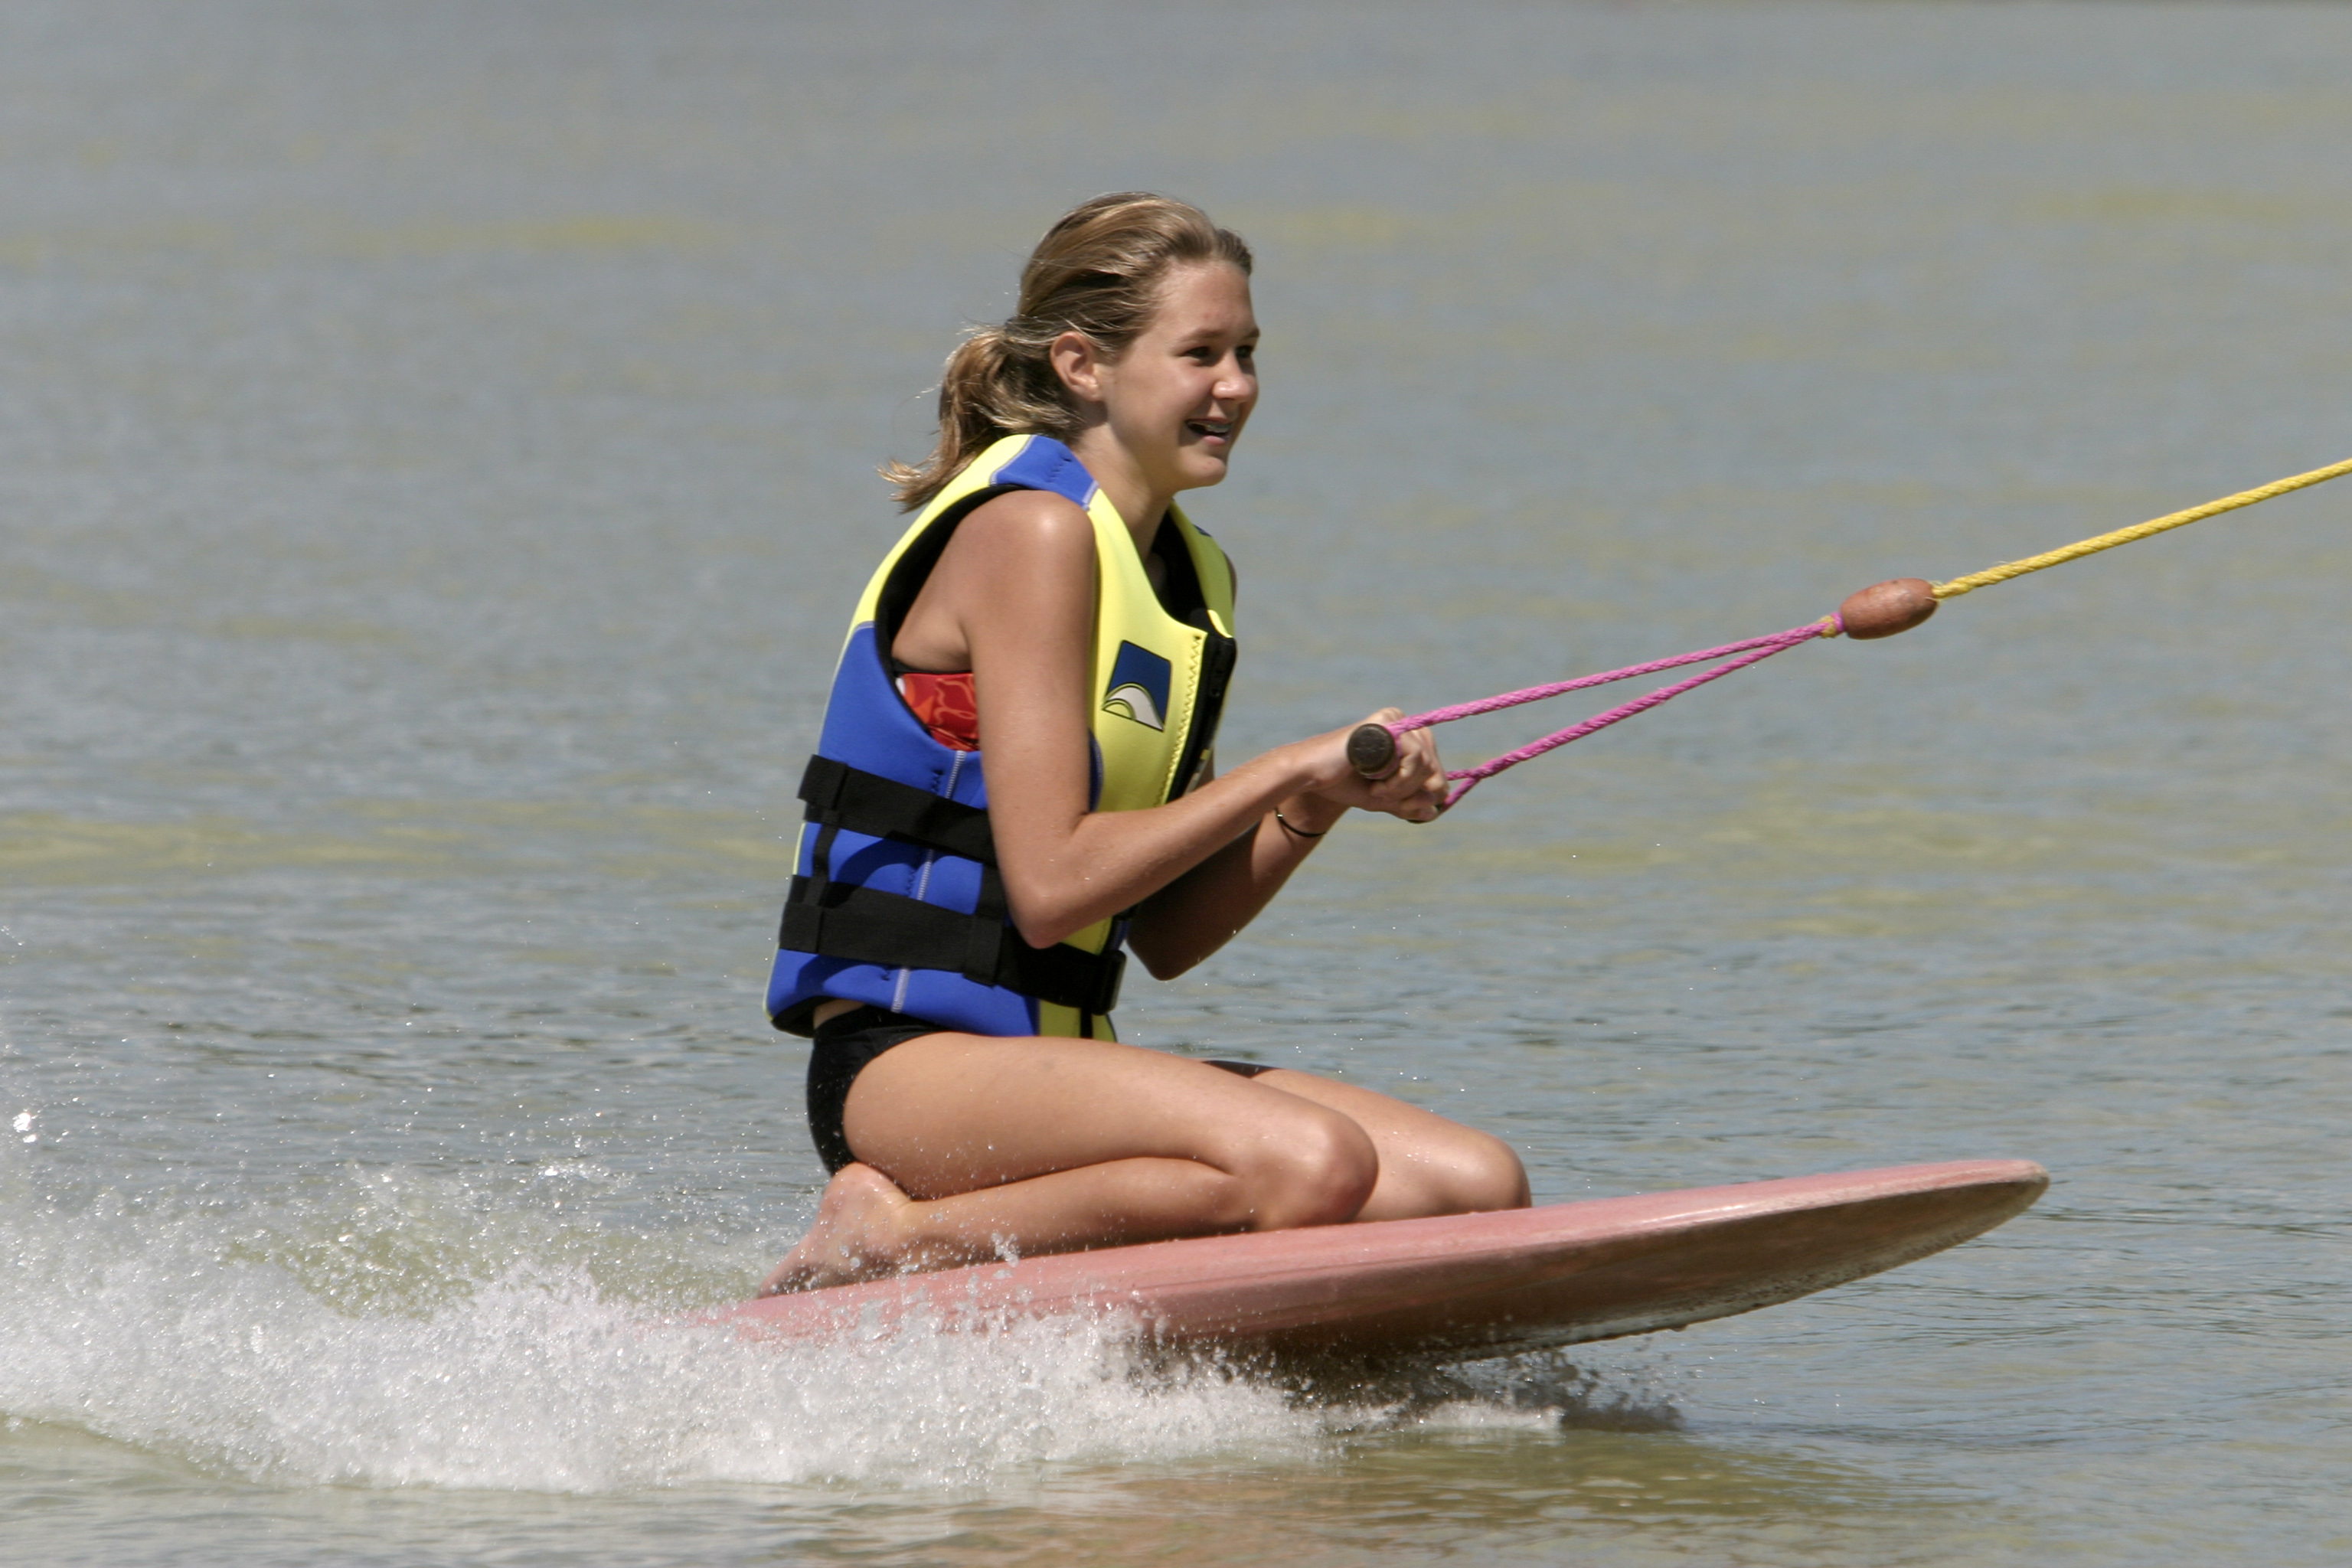 Kneeboard_girl.jpg